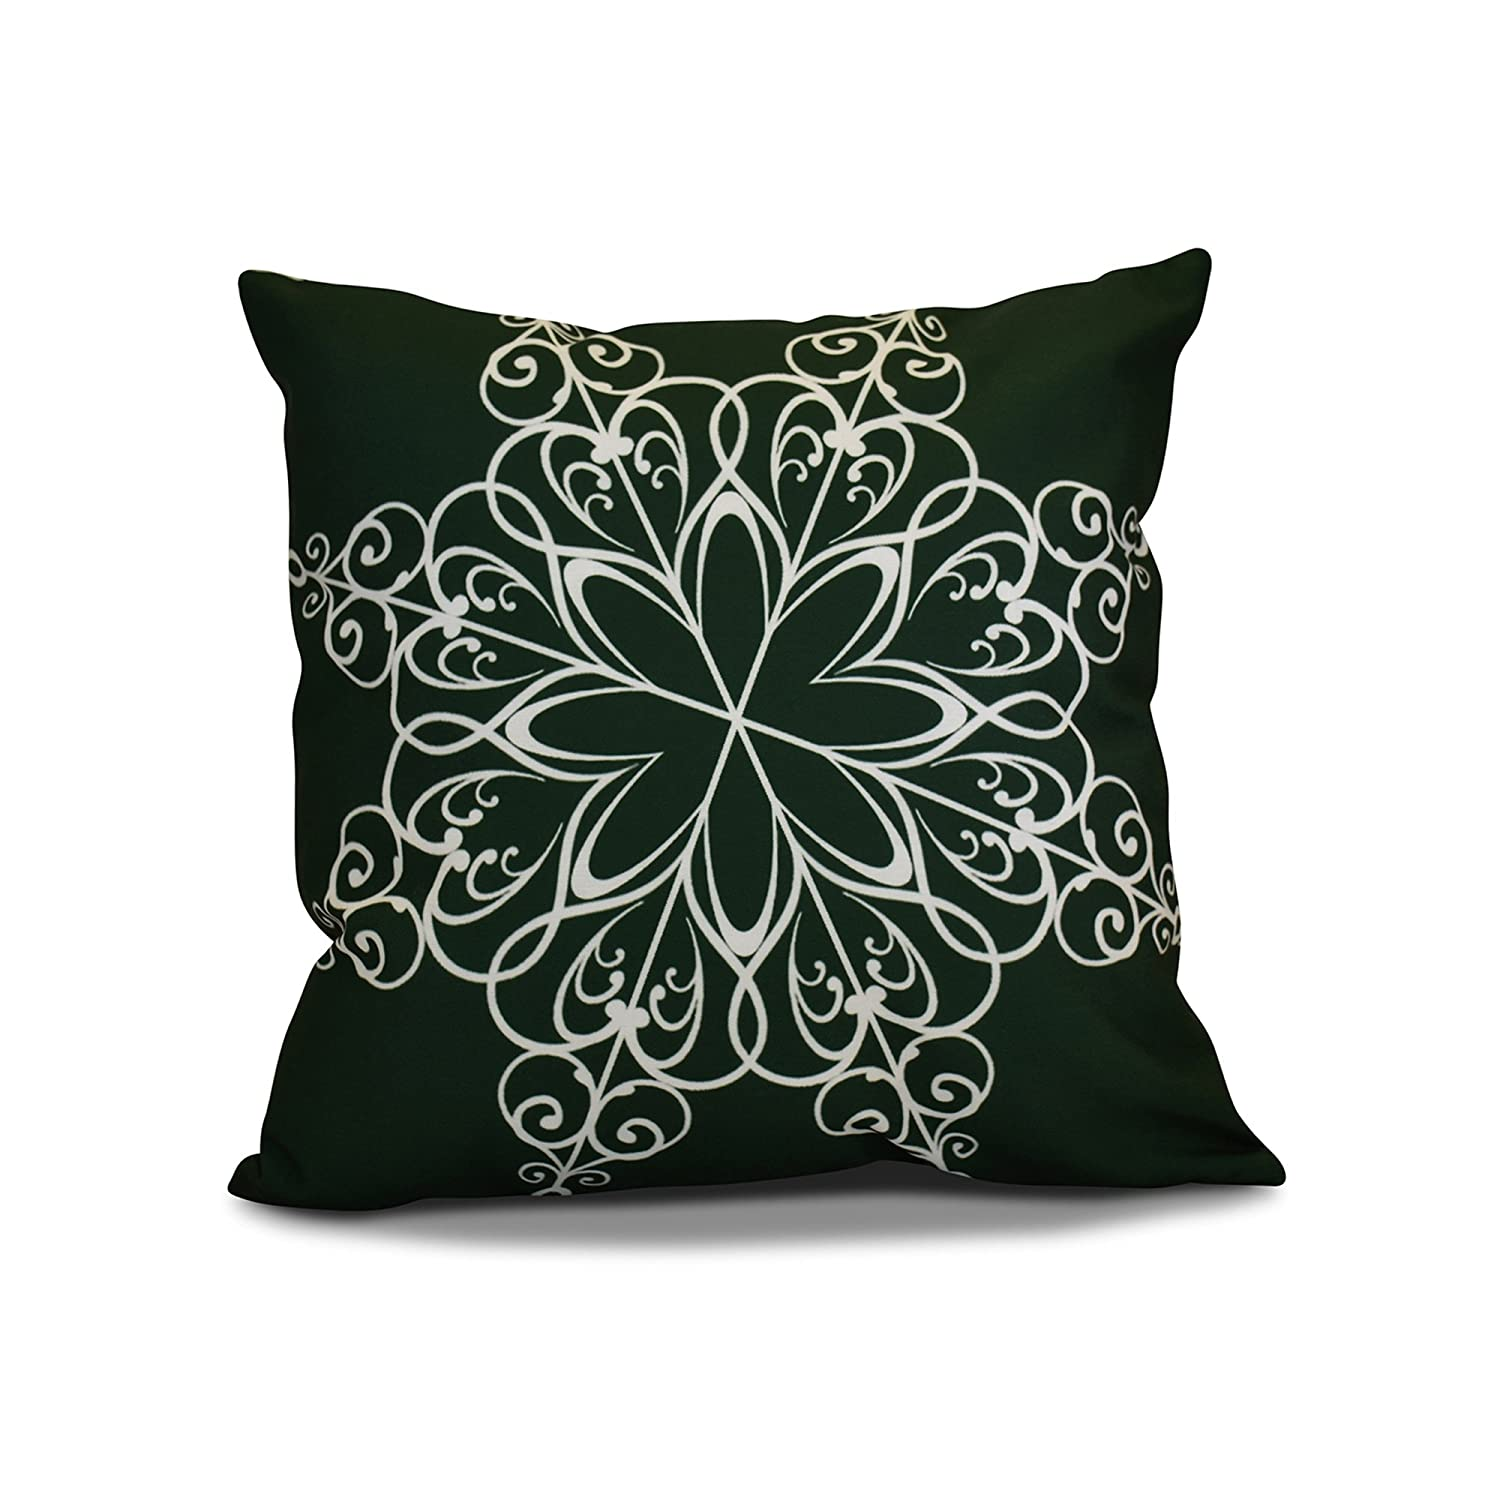 Decorative Holiday 16x16 Green E by design PHGN681GR26-16 16 x 16 inch